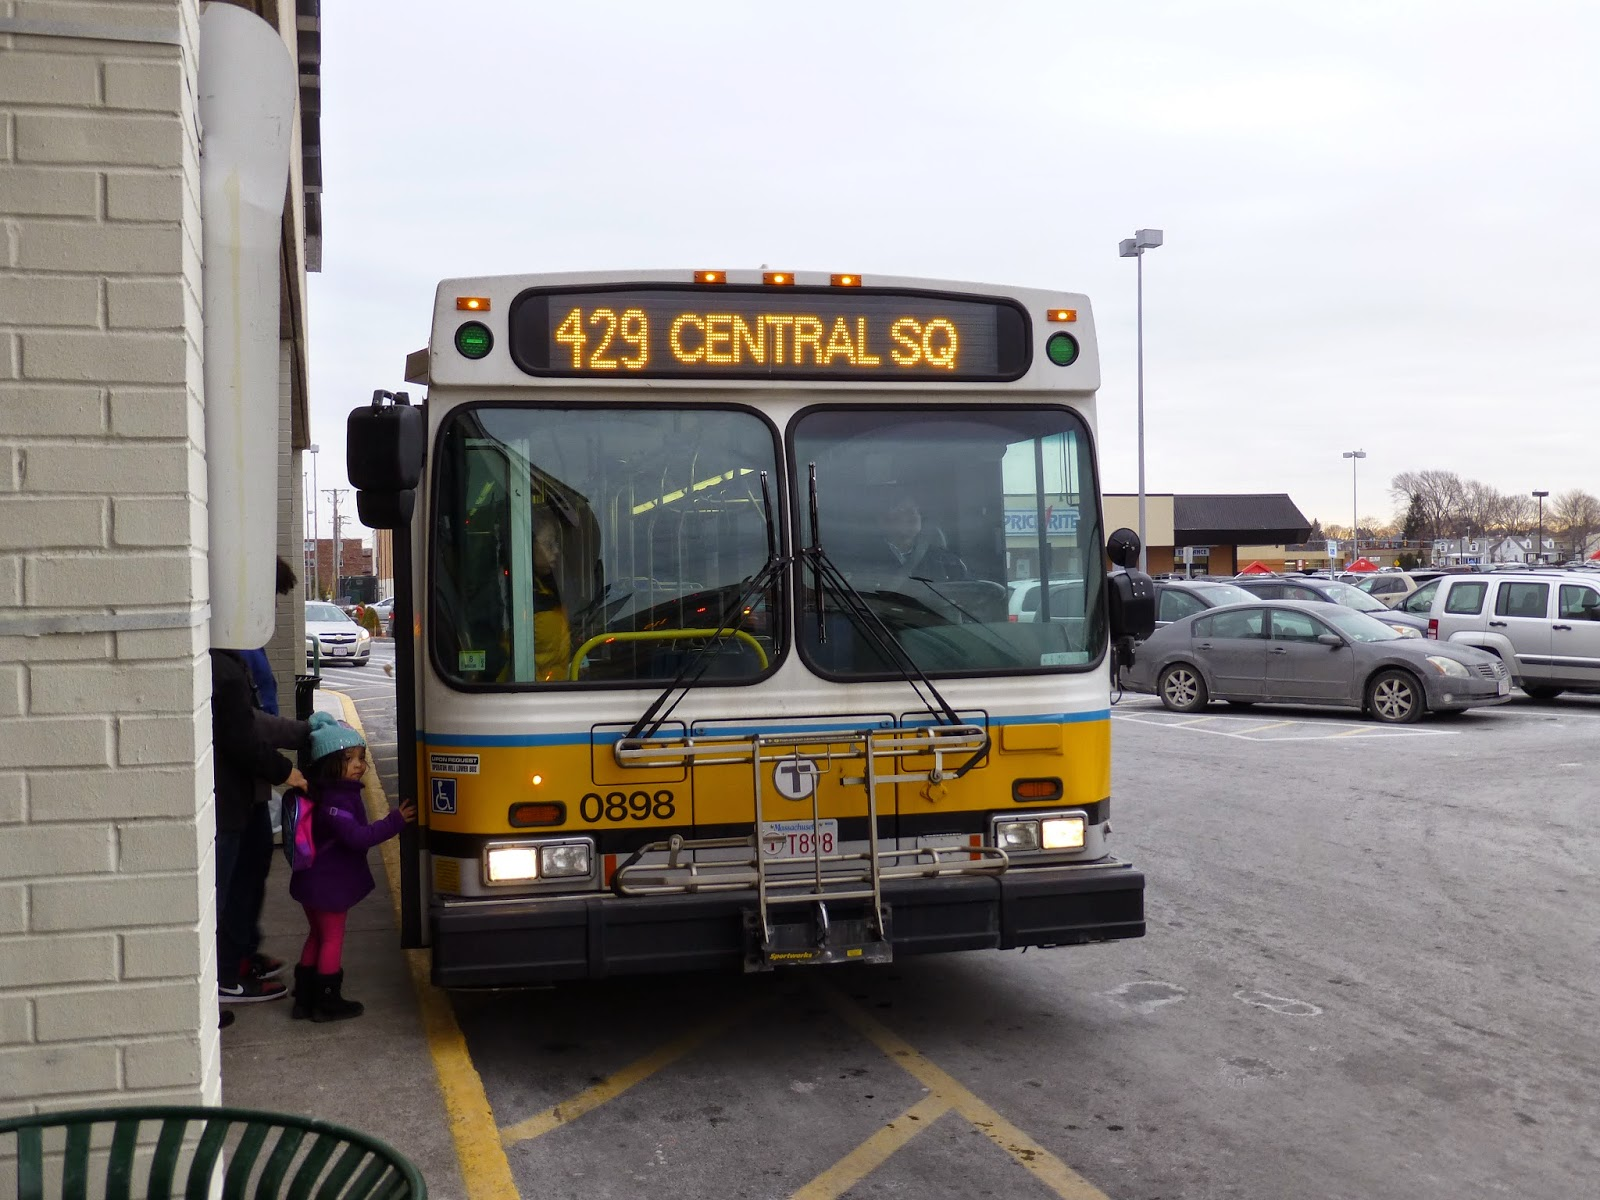 miles on the mbta: 429 (northgate shopping center - central square